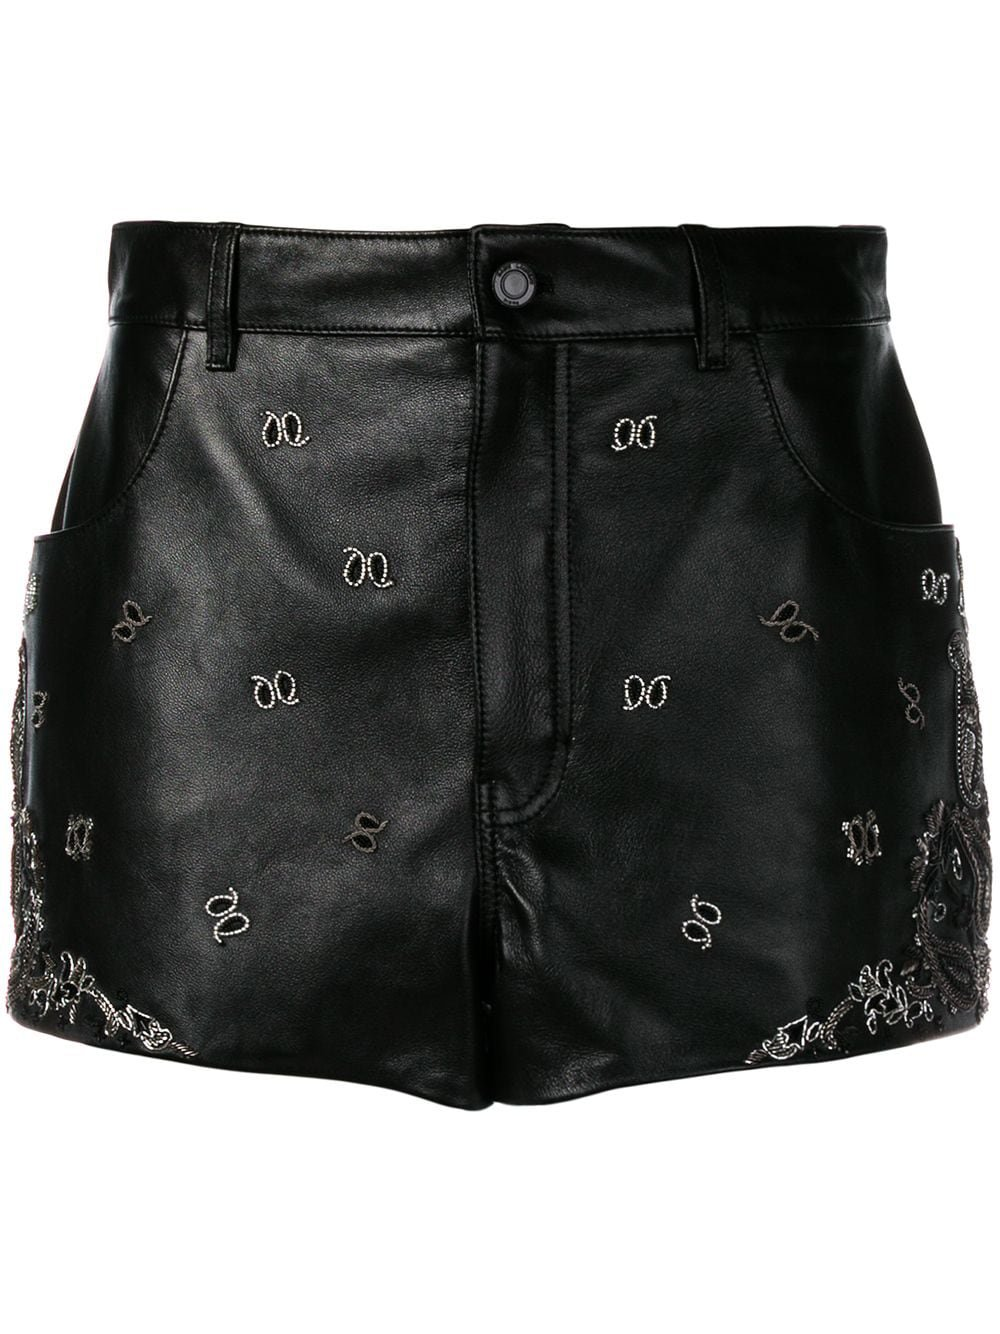 Saint Laurent Embroidered Mini Skirt | Farfetch.com